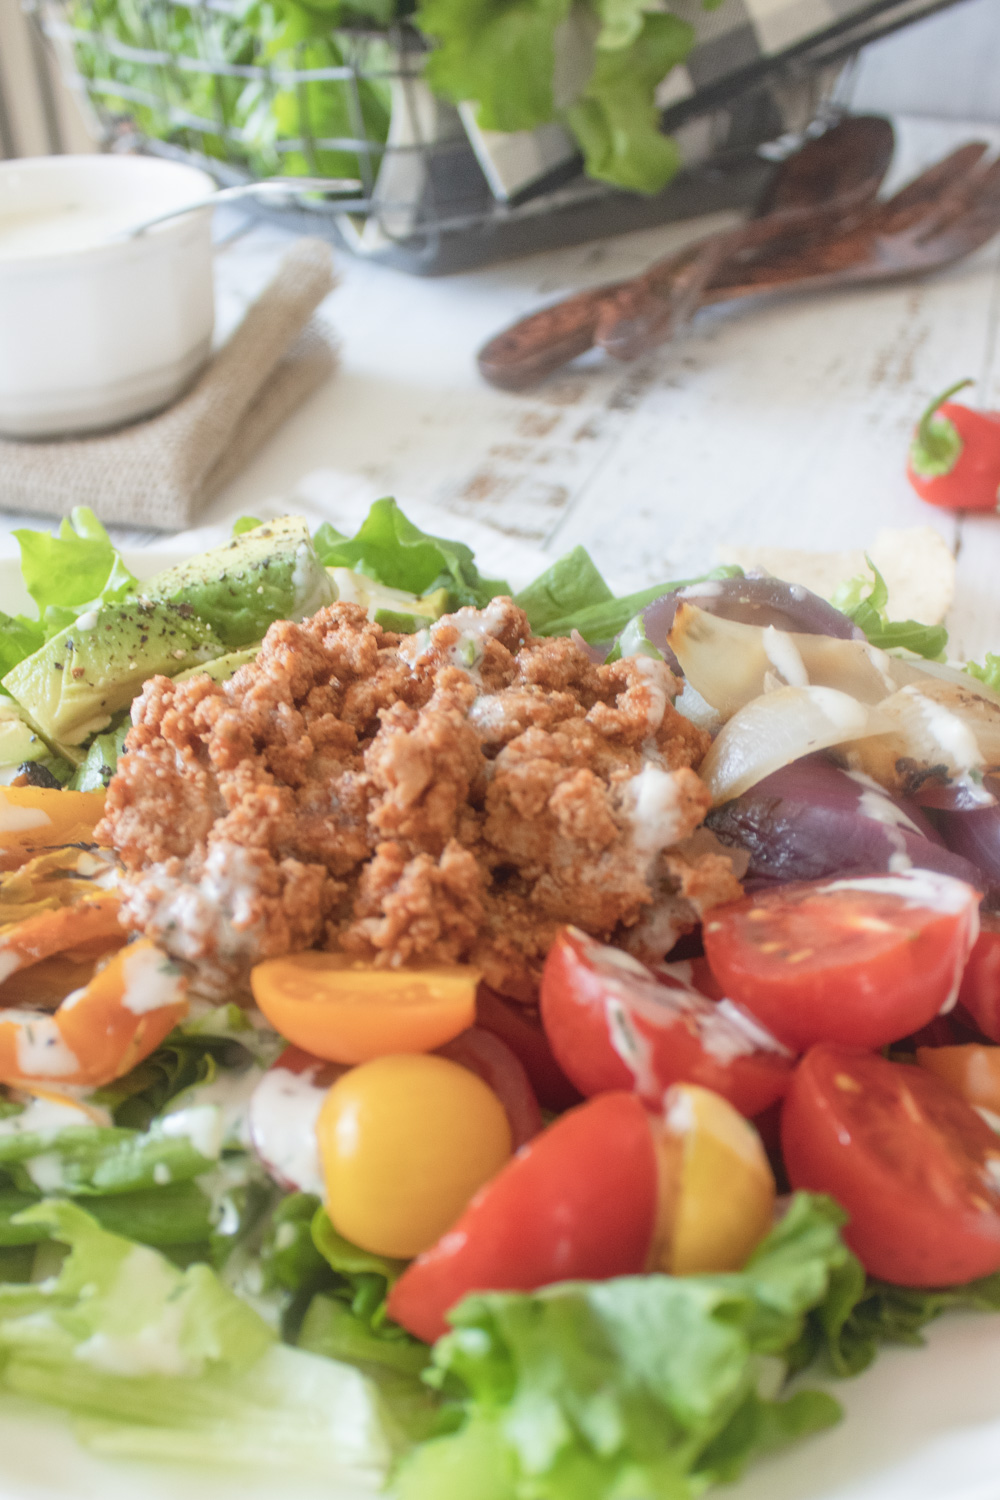 close up of tomatoes and meat in salad